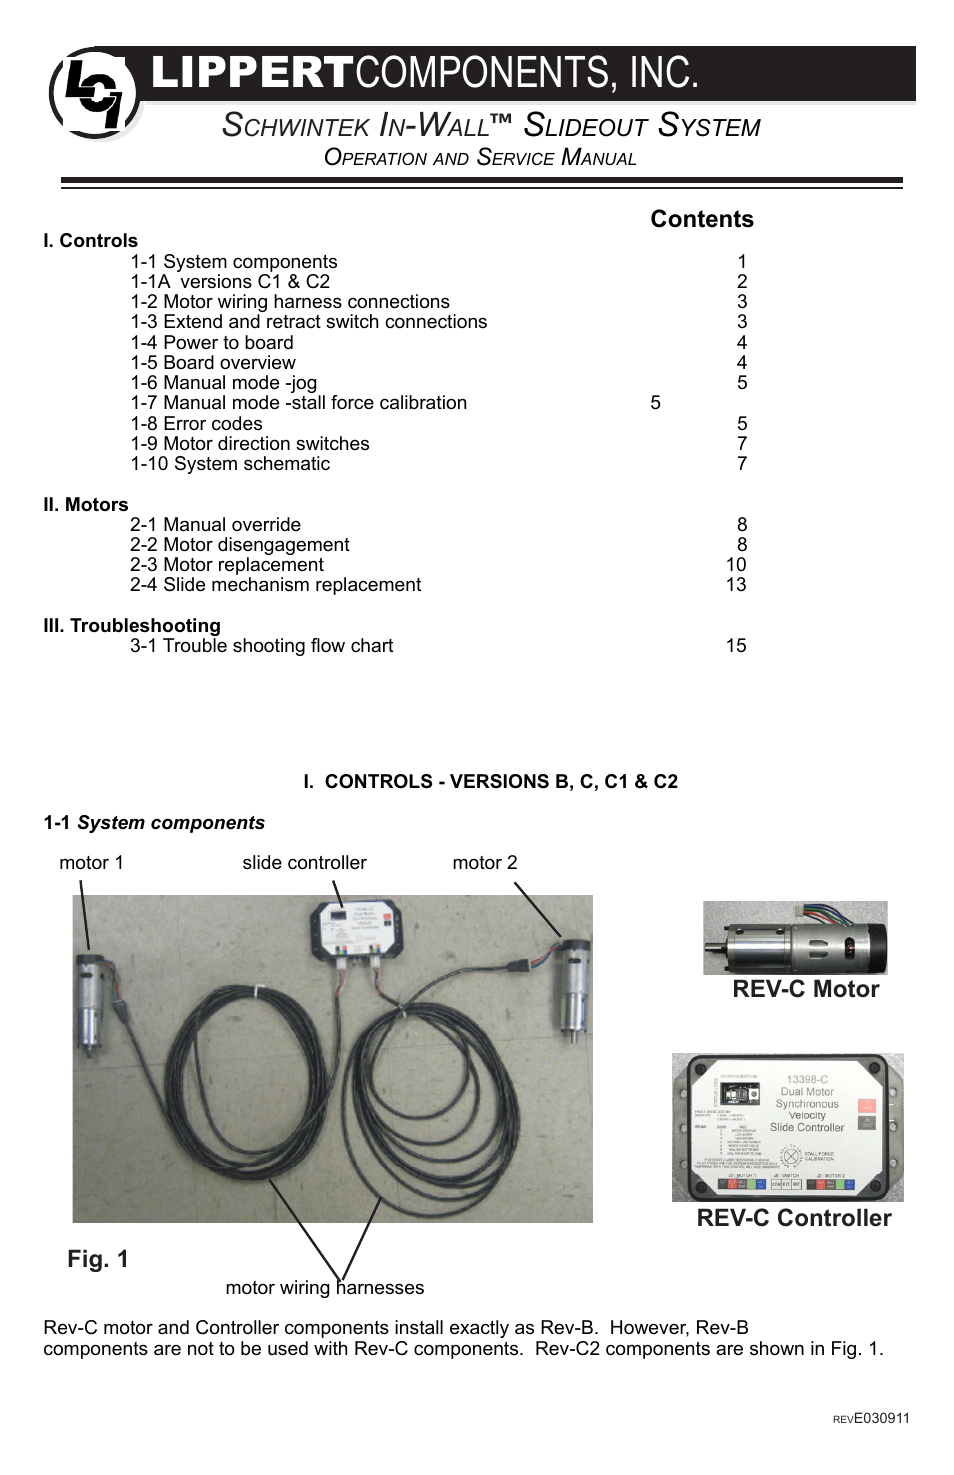 hight resolution of  lippert components in wall slide out system user manual 16 pages on slide out